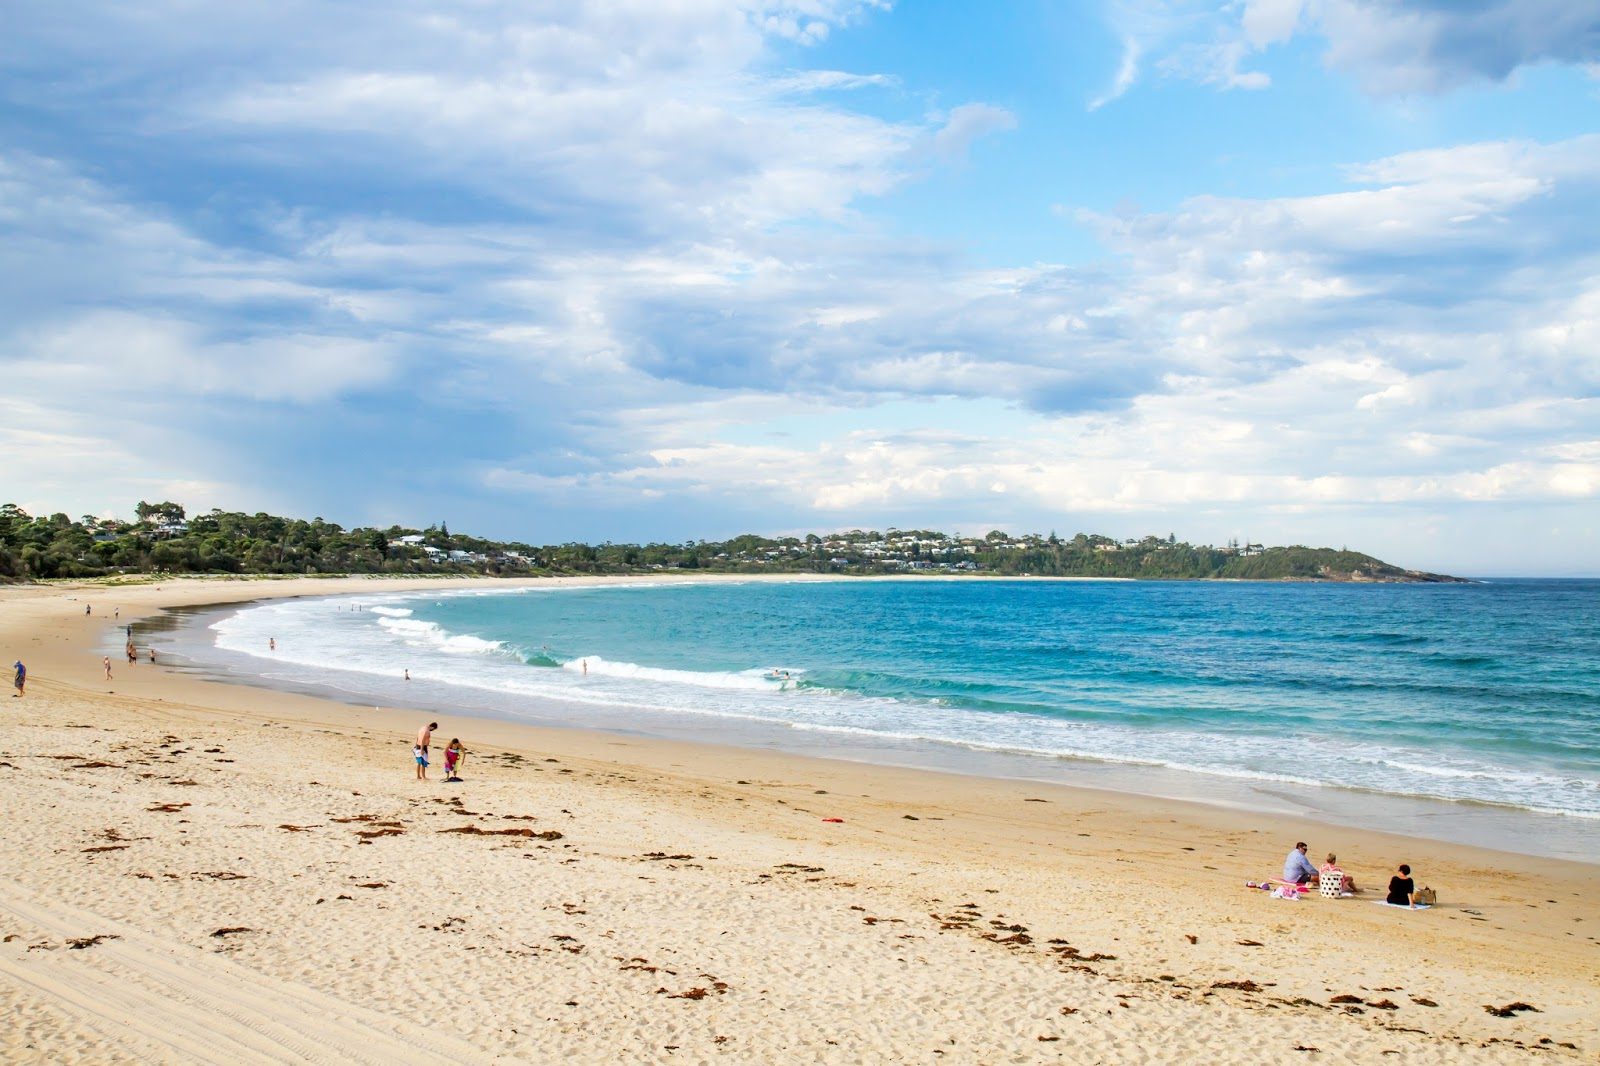 Beautiful Mollymook Beach in NSW, Australia